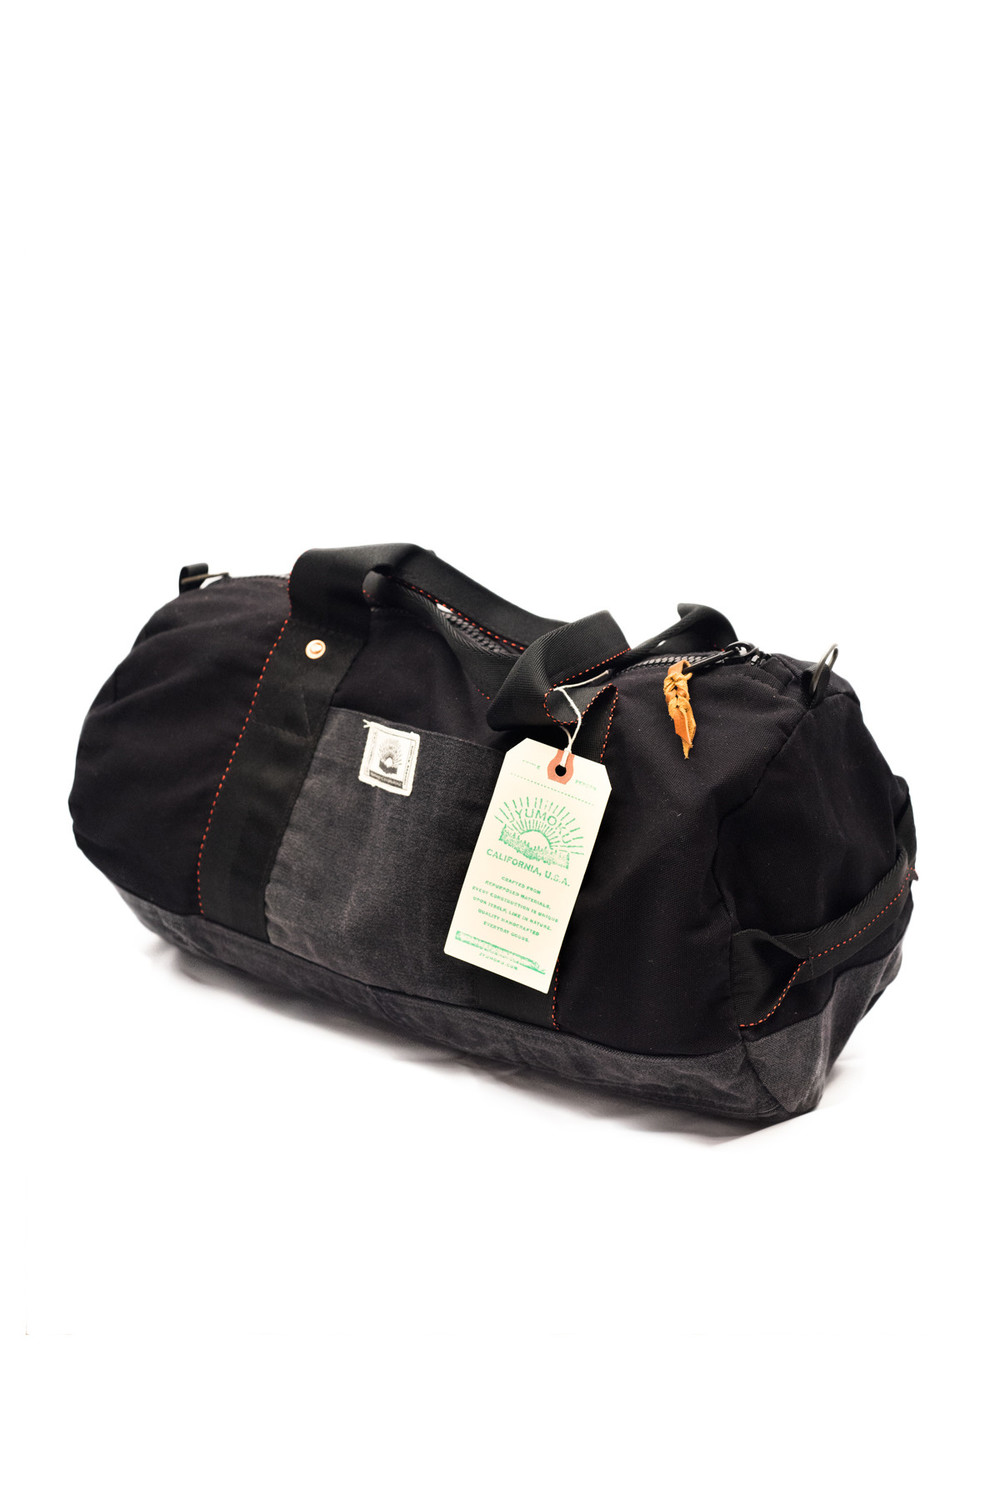 Jyumoku-Gym-Bag-BLack.jpg